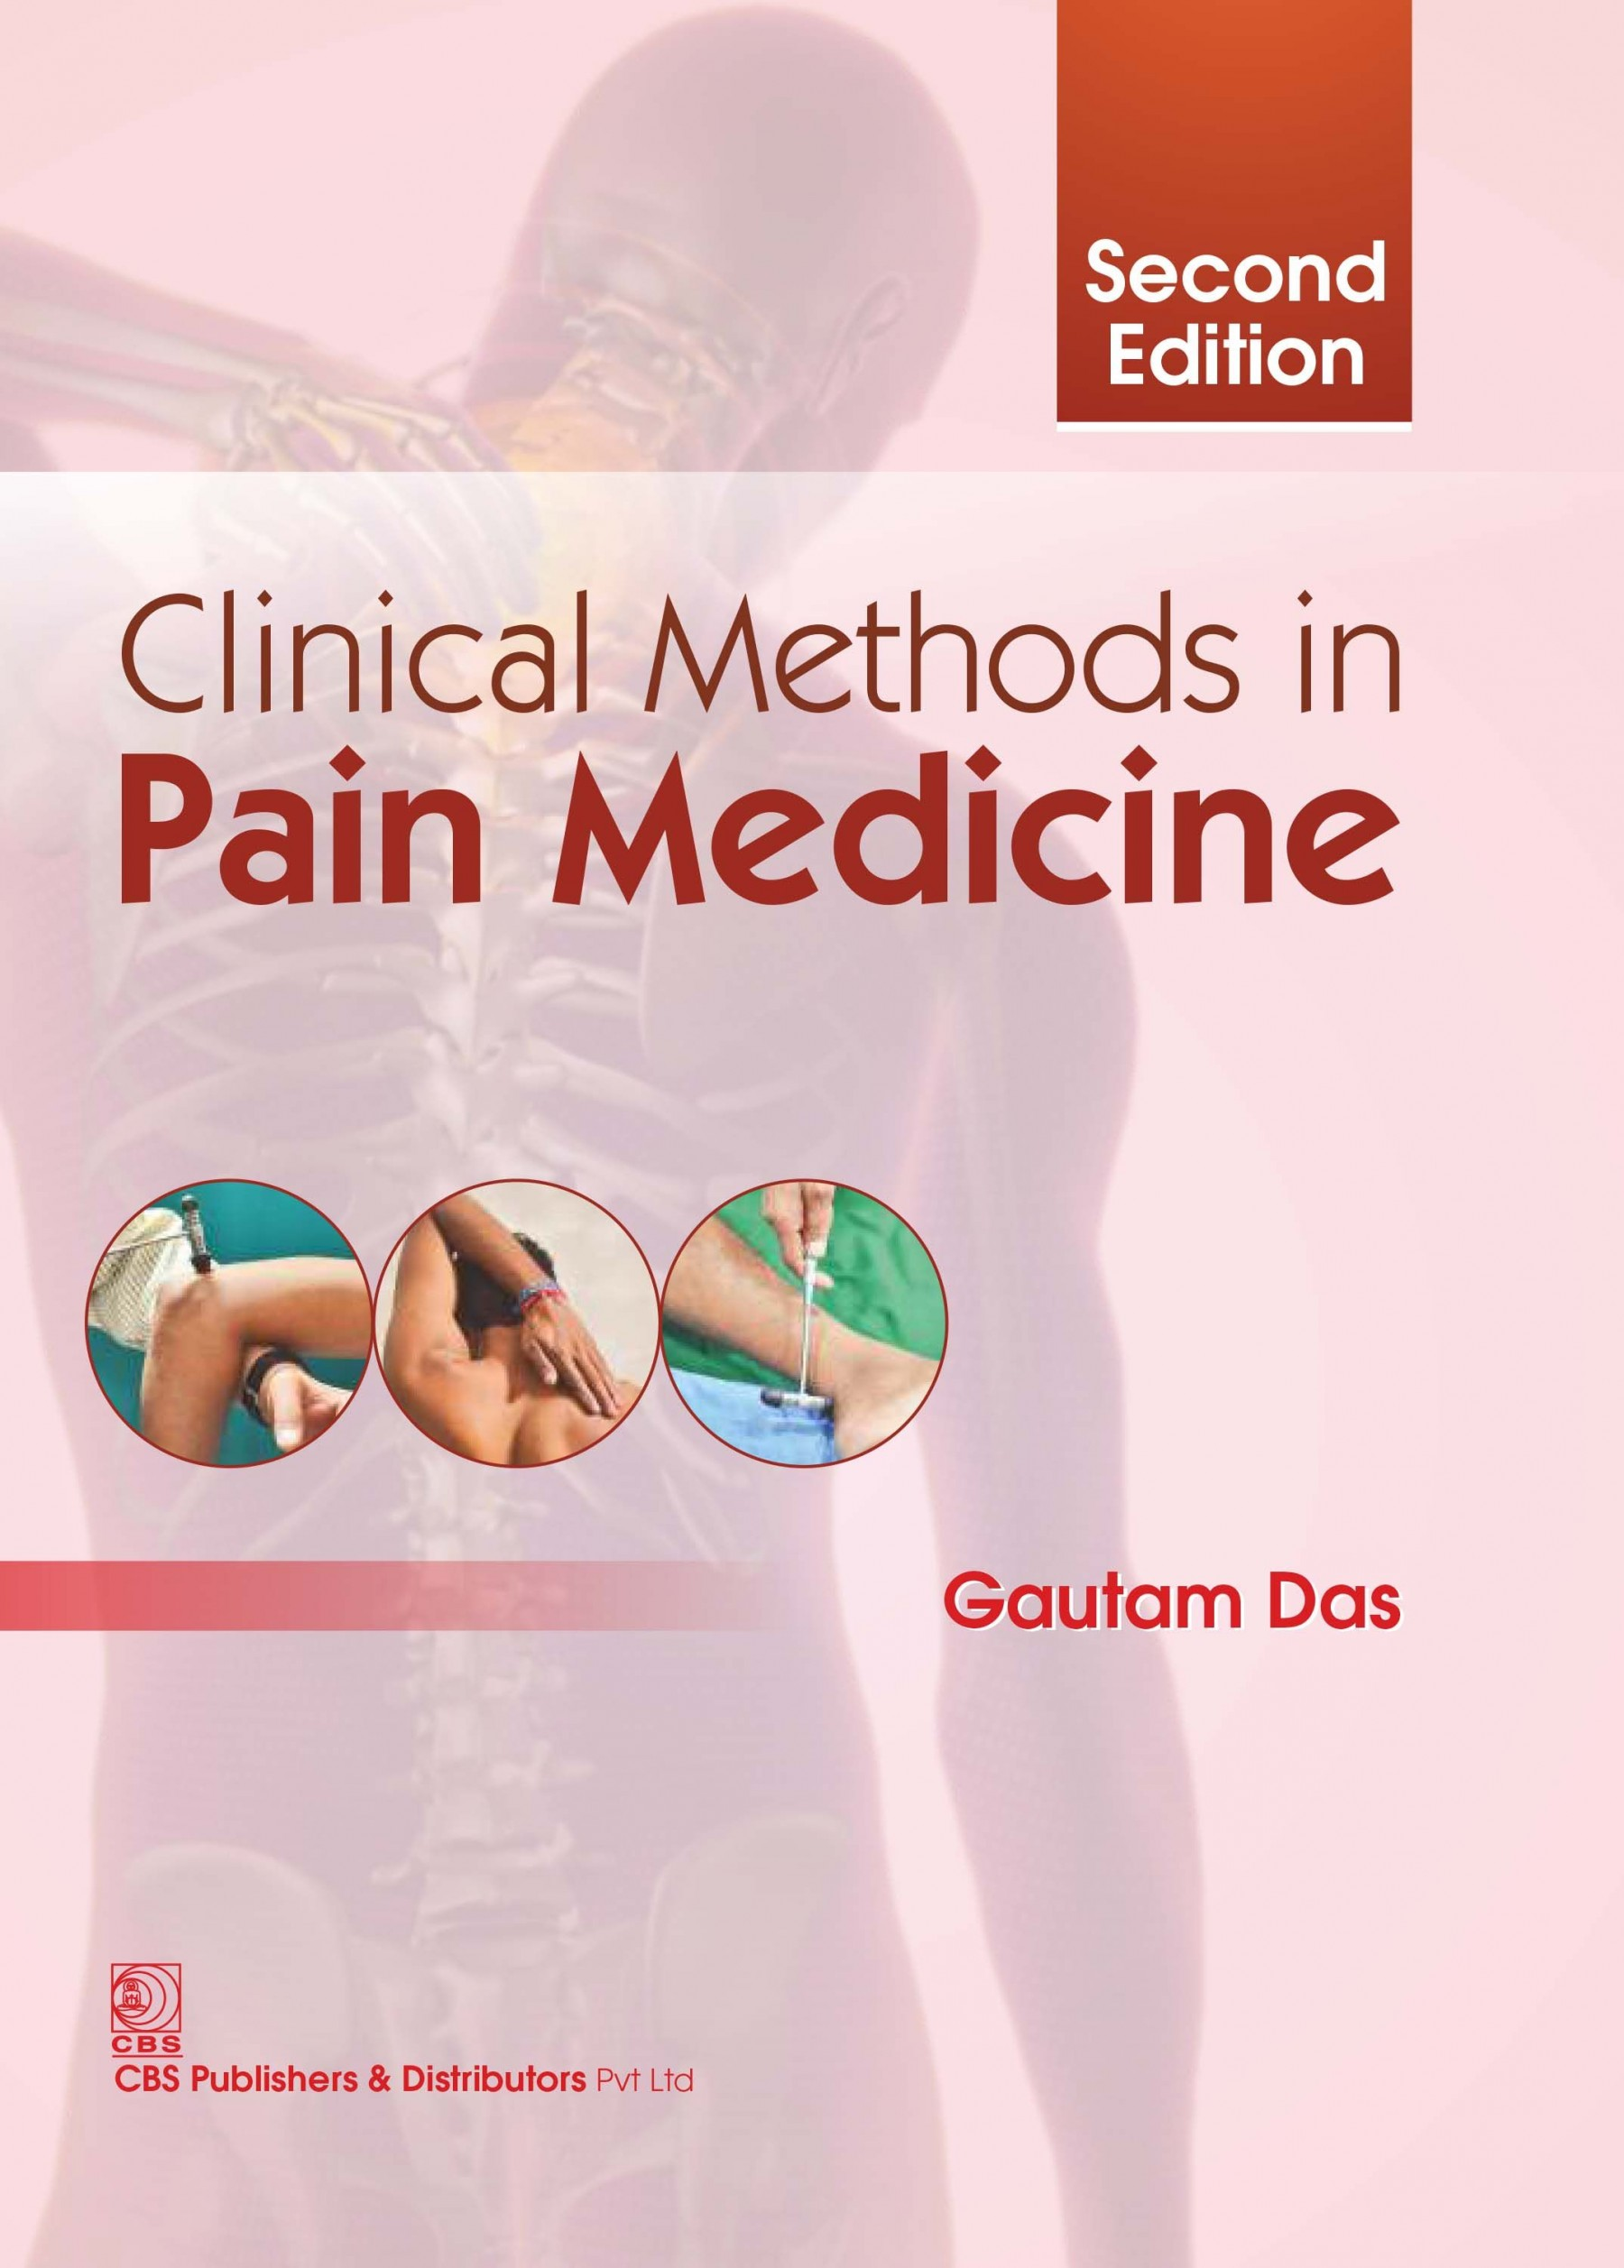 Clinical Methods In Pain Medicine 2Ed (Hb 2017)